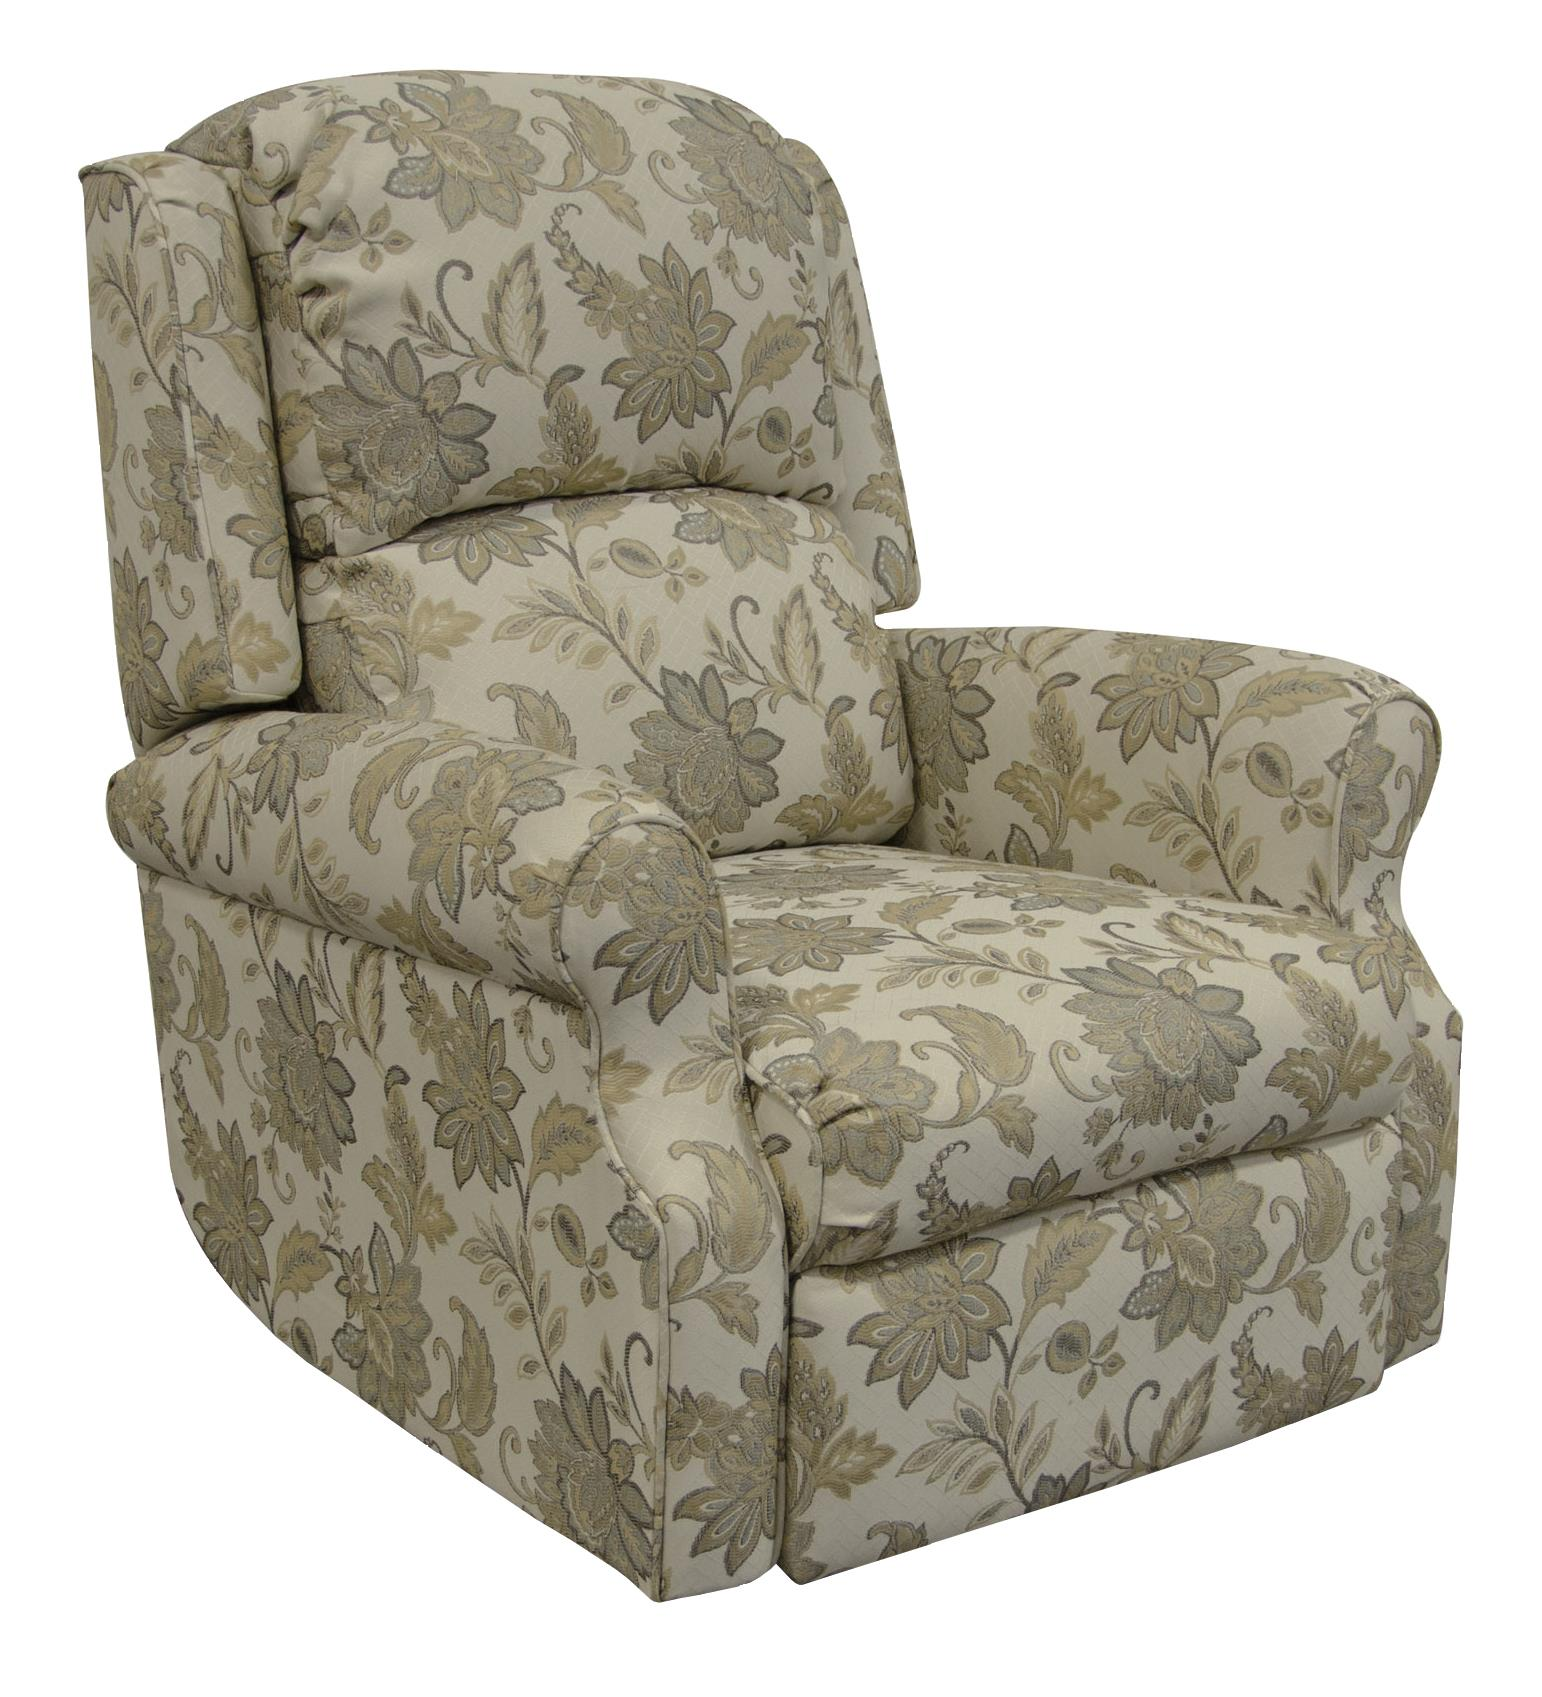 England Marybeth Swivel Gliding Recliner - Item Number: 210-70-6646